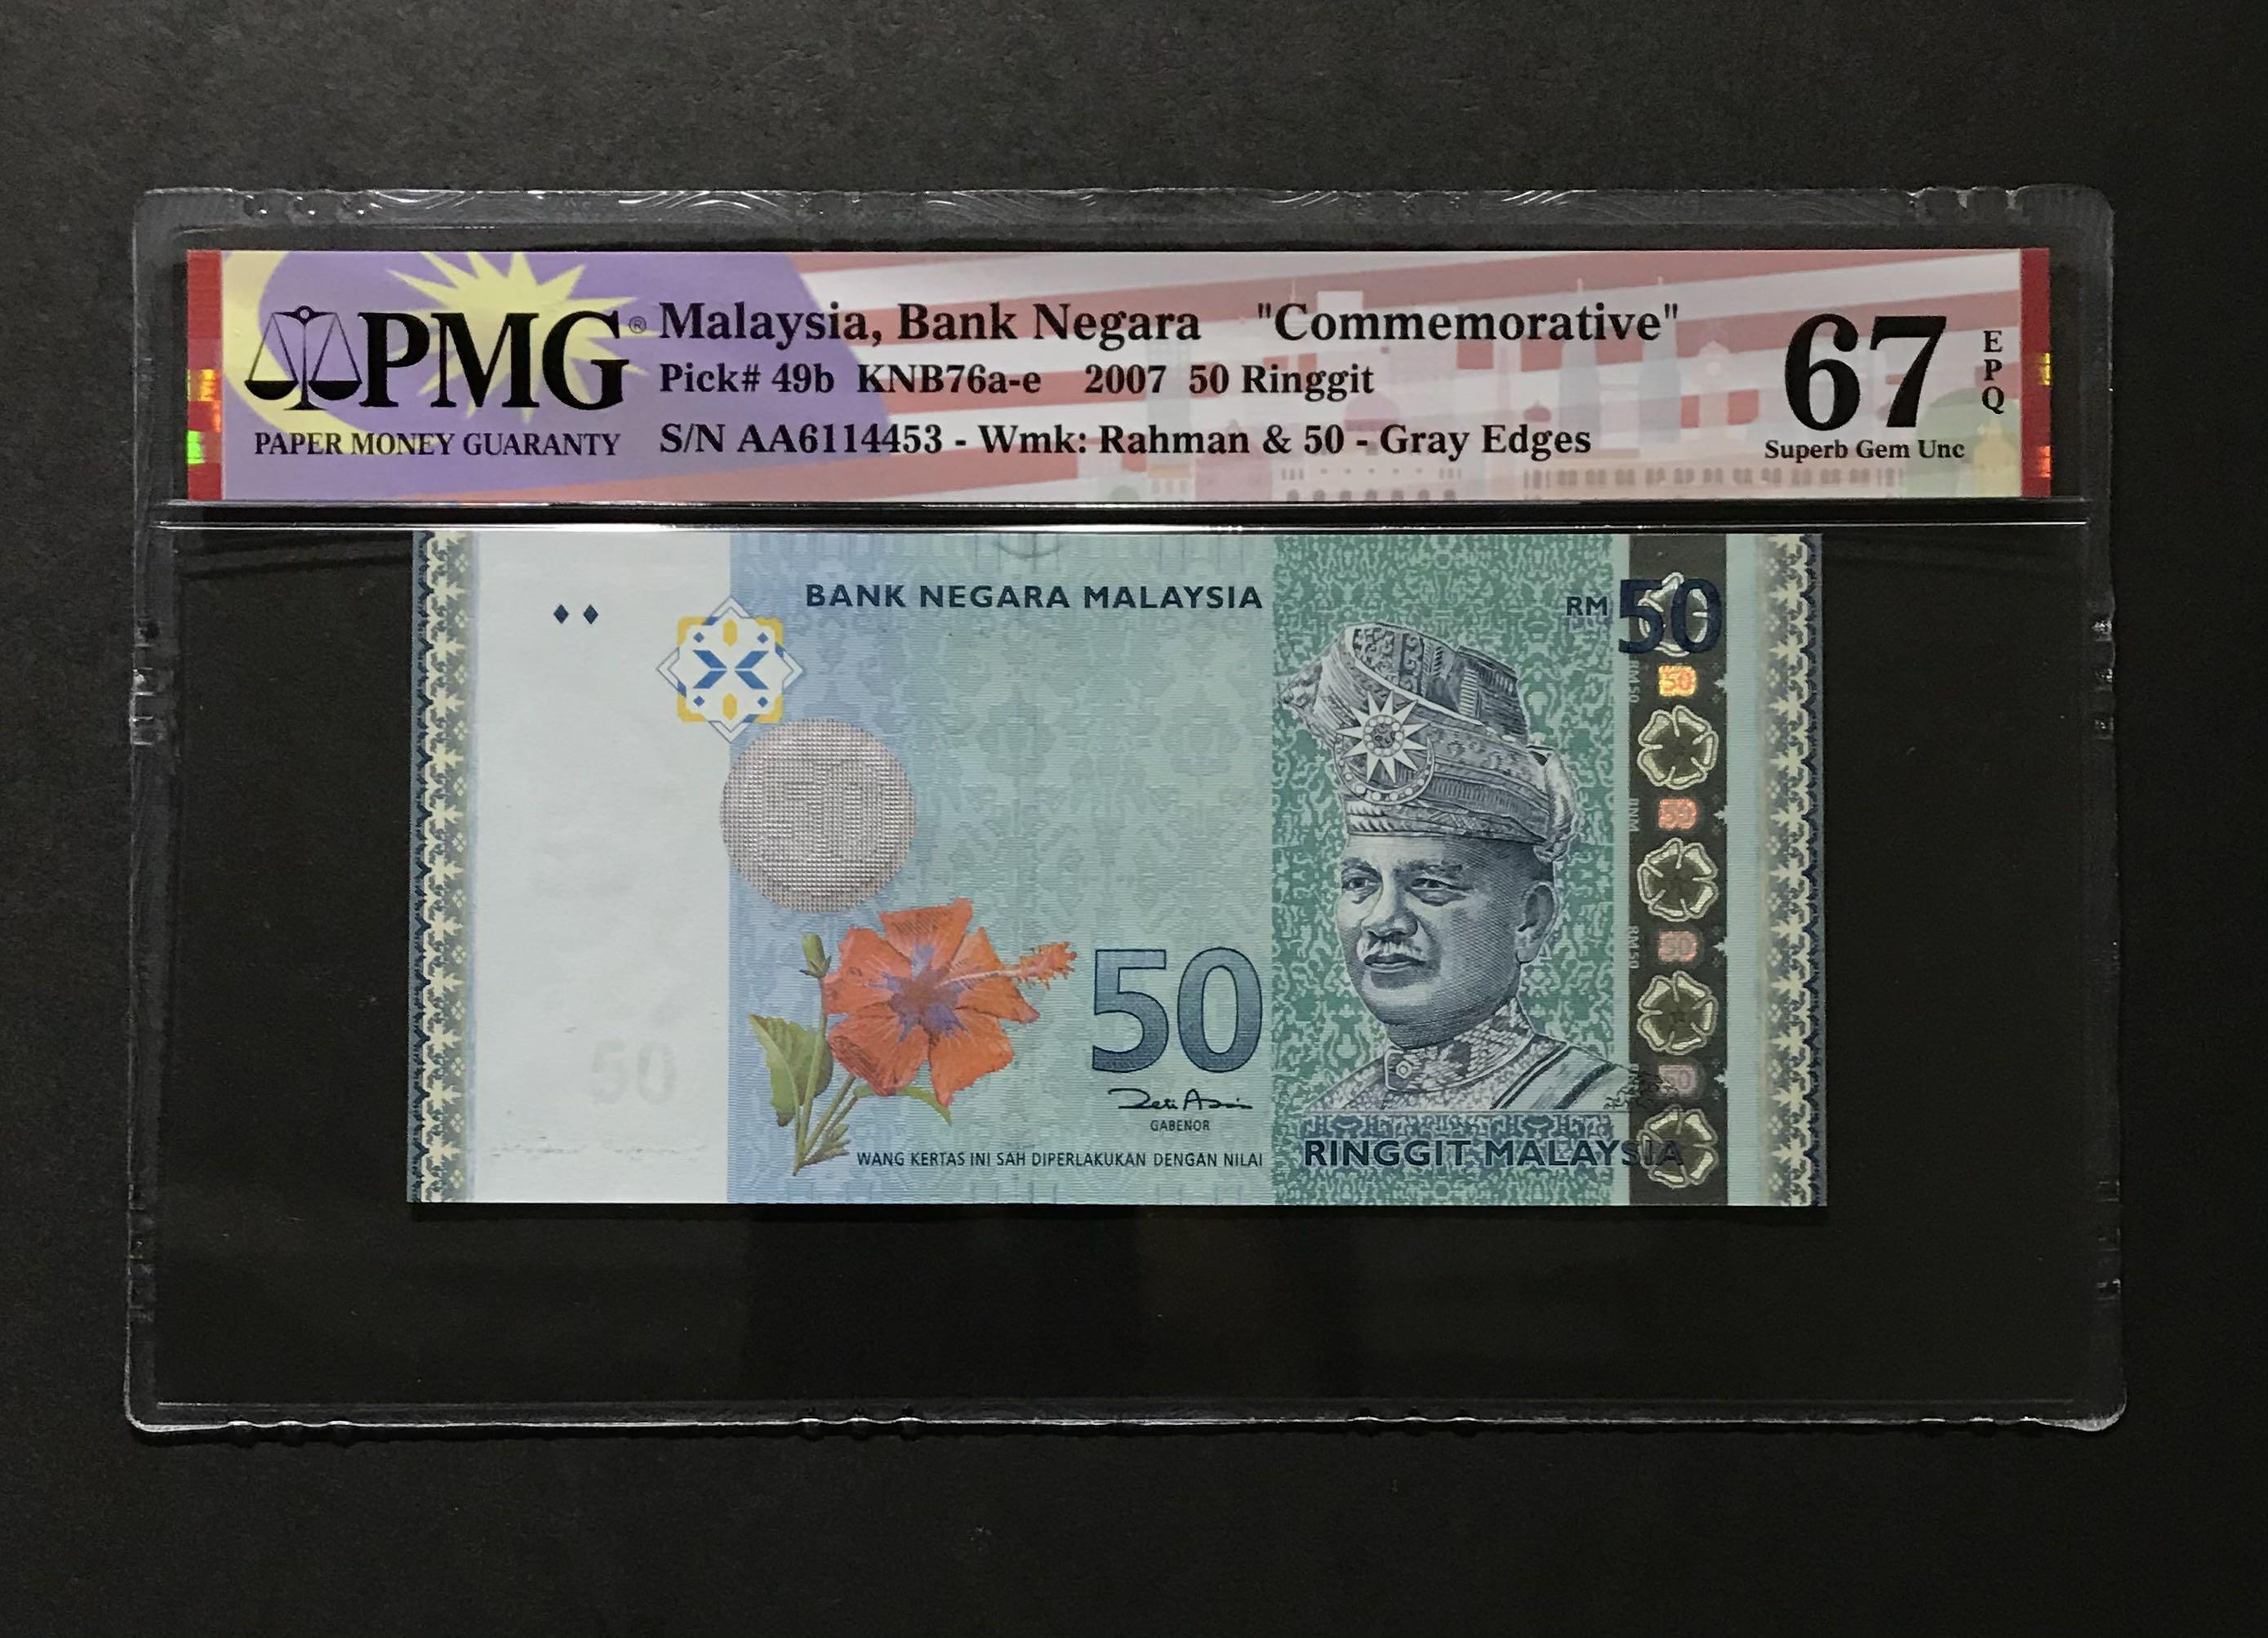 (AA) 11th series Rm50 commemorative First prefix @ 50th anniversary logo, Grade PMG 67EPQ superb Gem Unc,